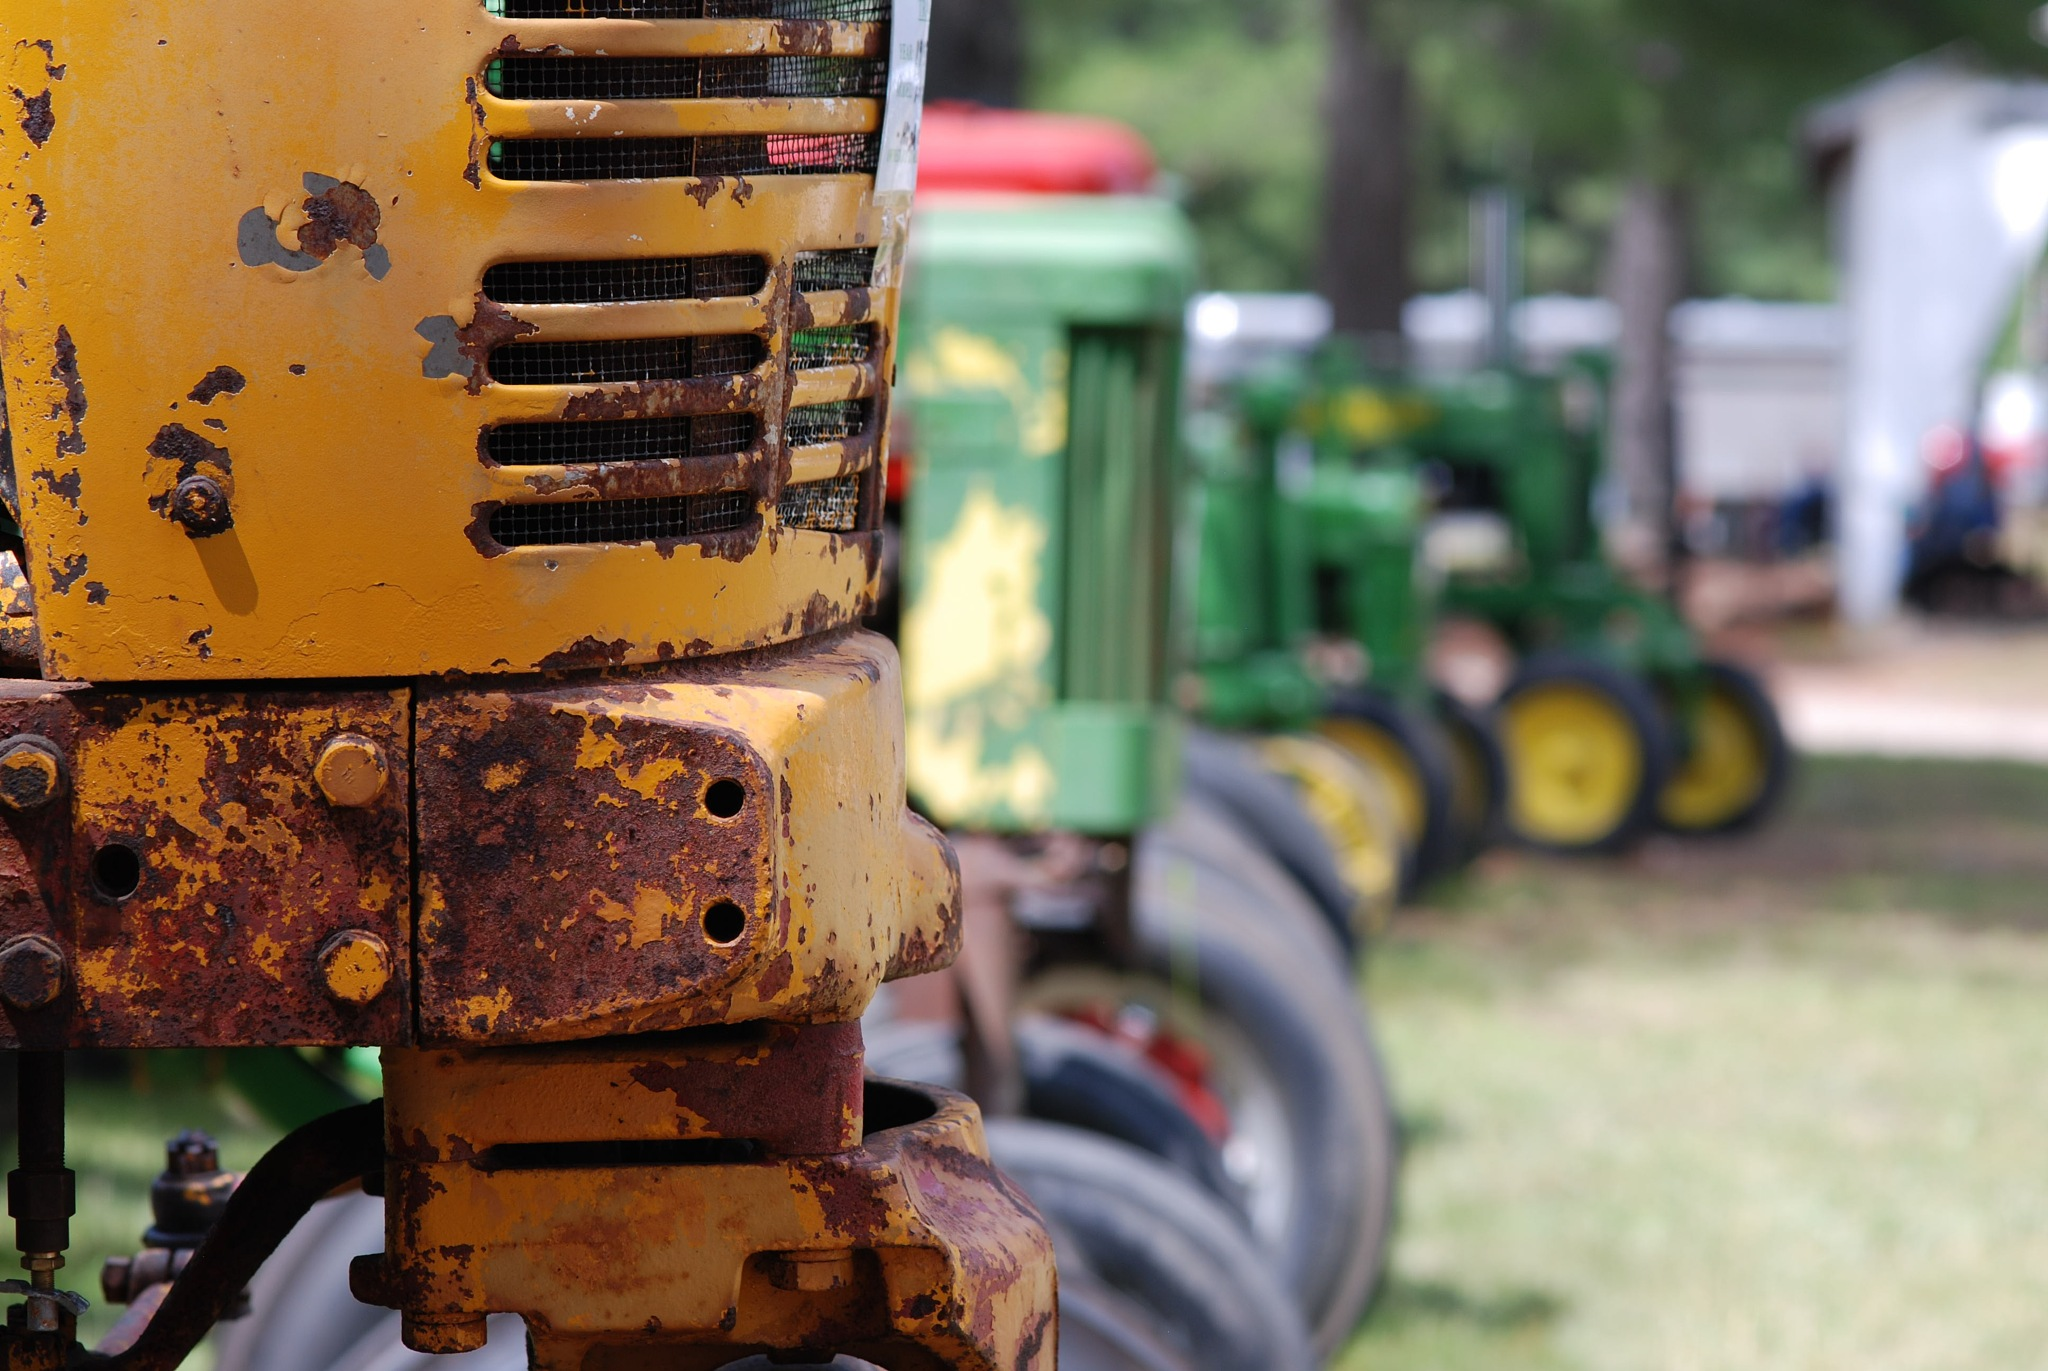 Tractors at the fair by dan_tirrell